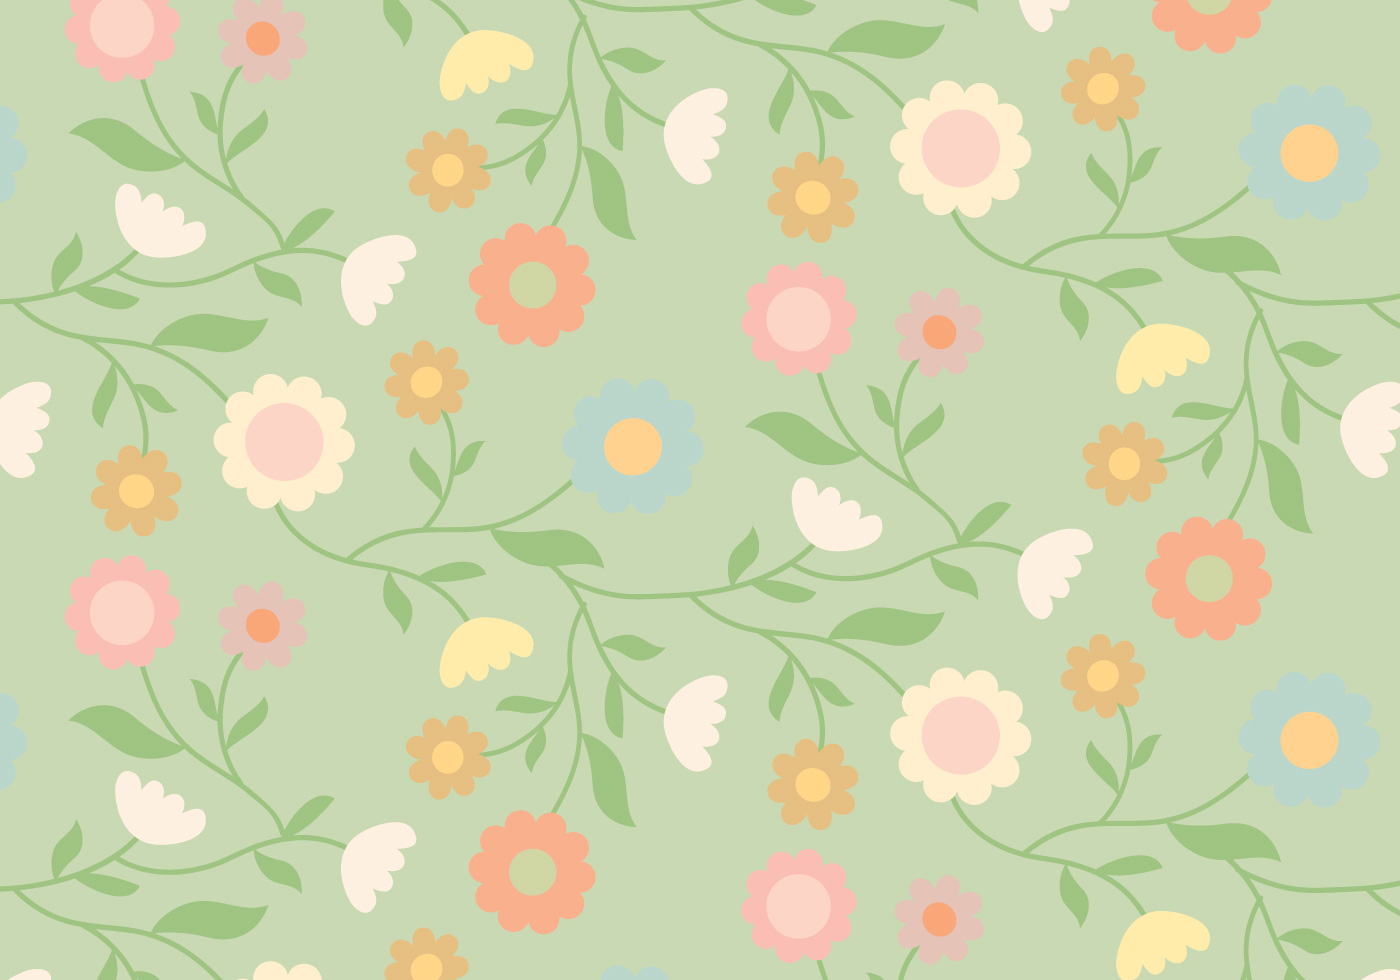 Vintage Floral Pattern - Download Free Vector Art, Stock ...